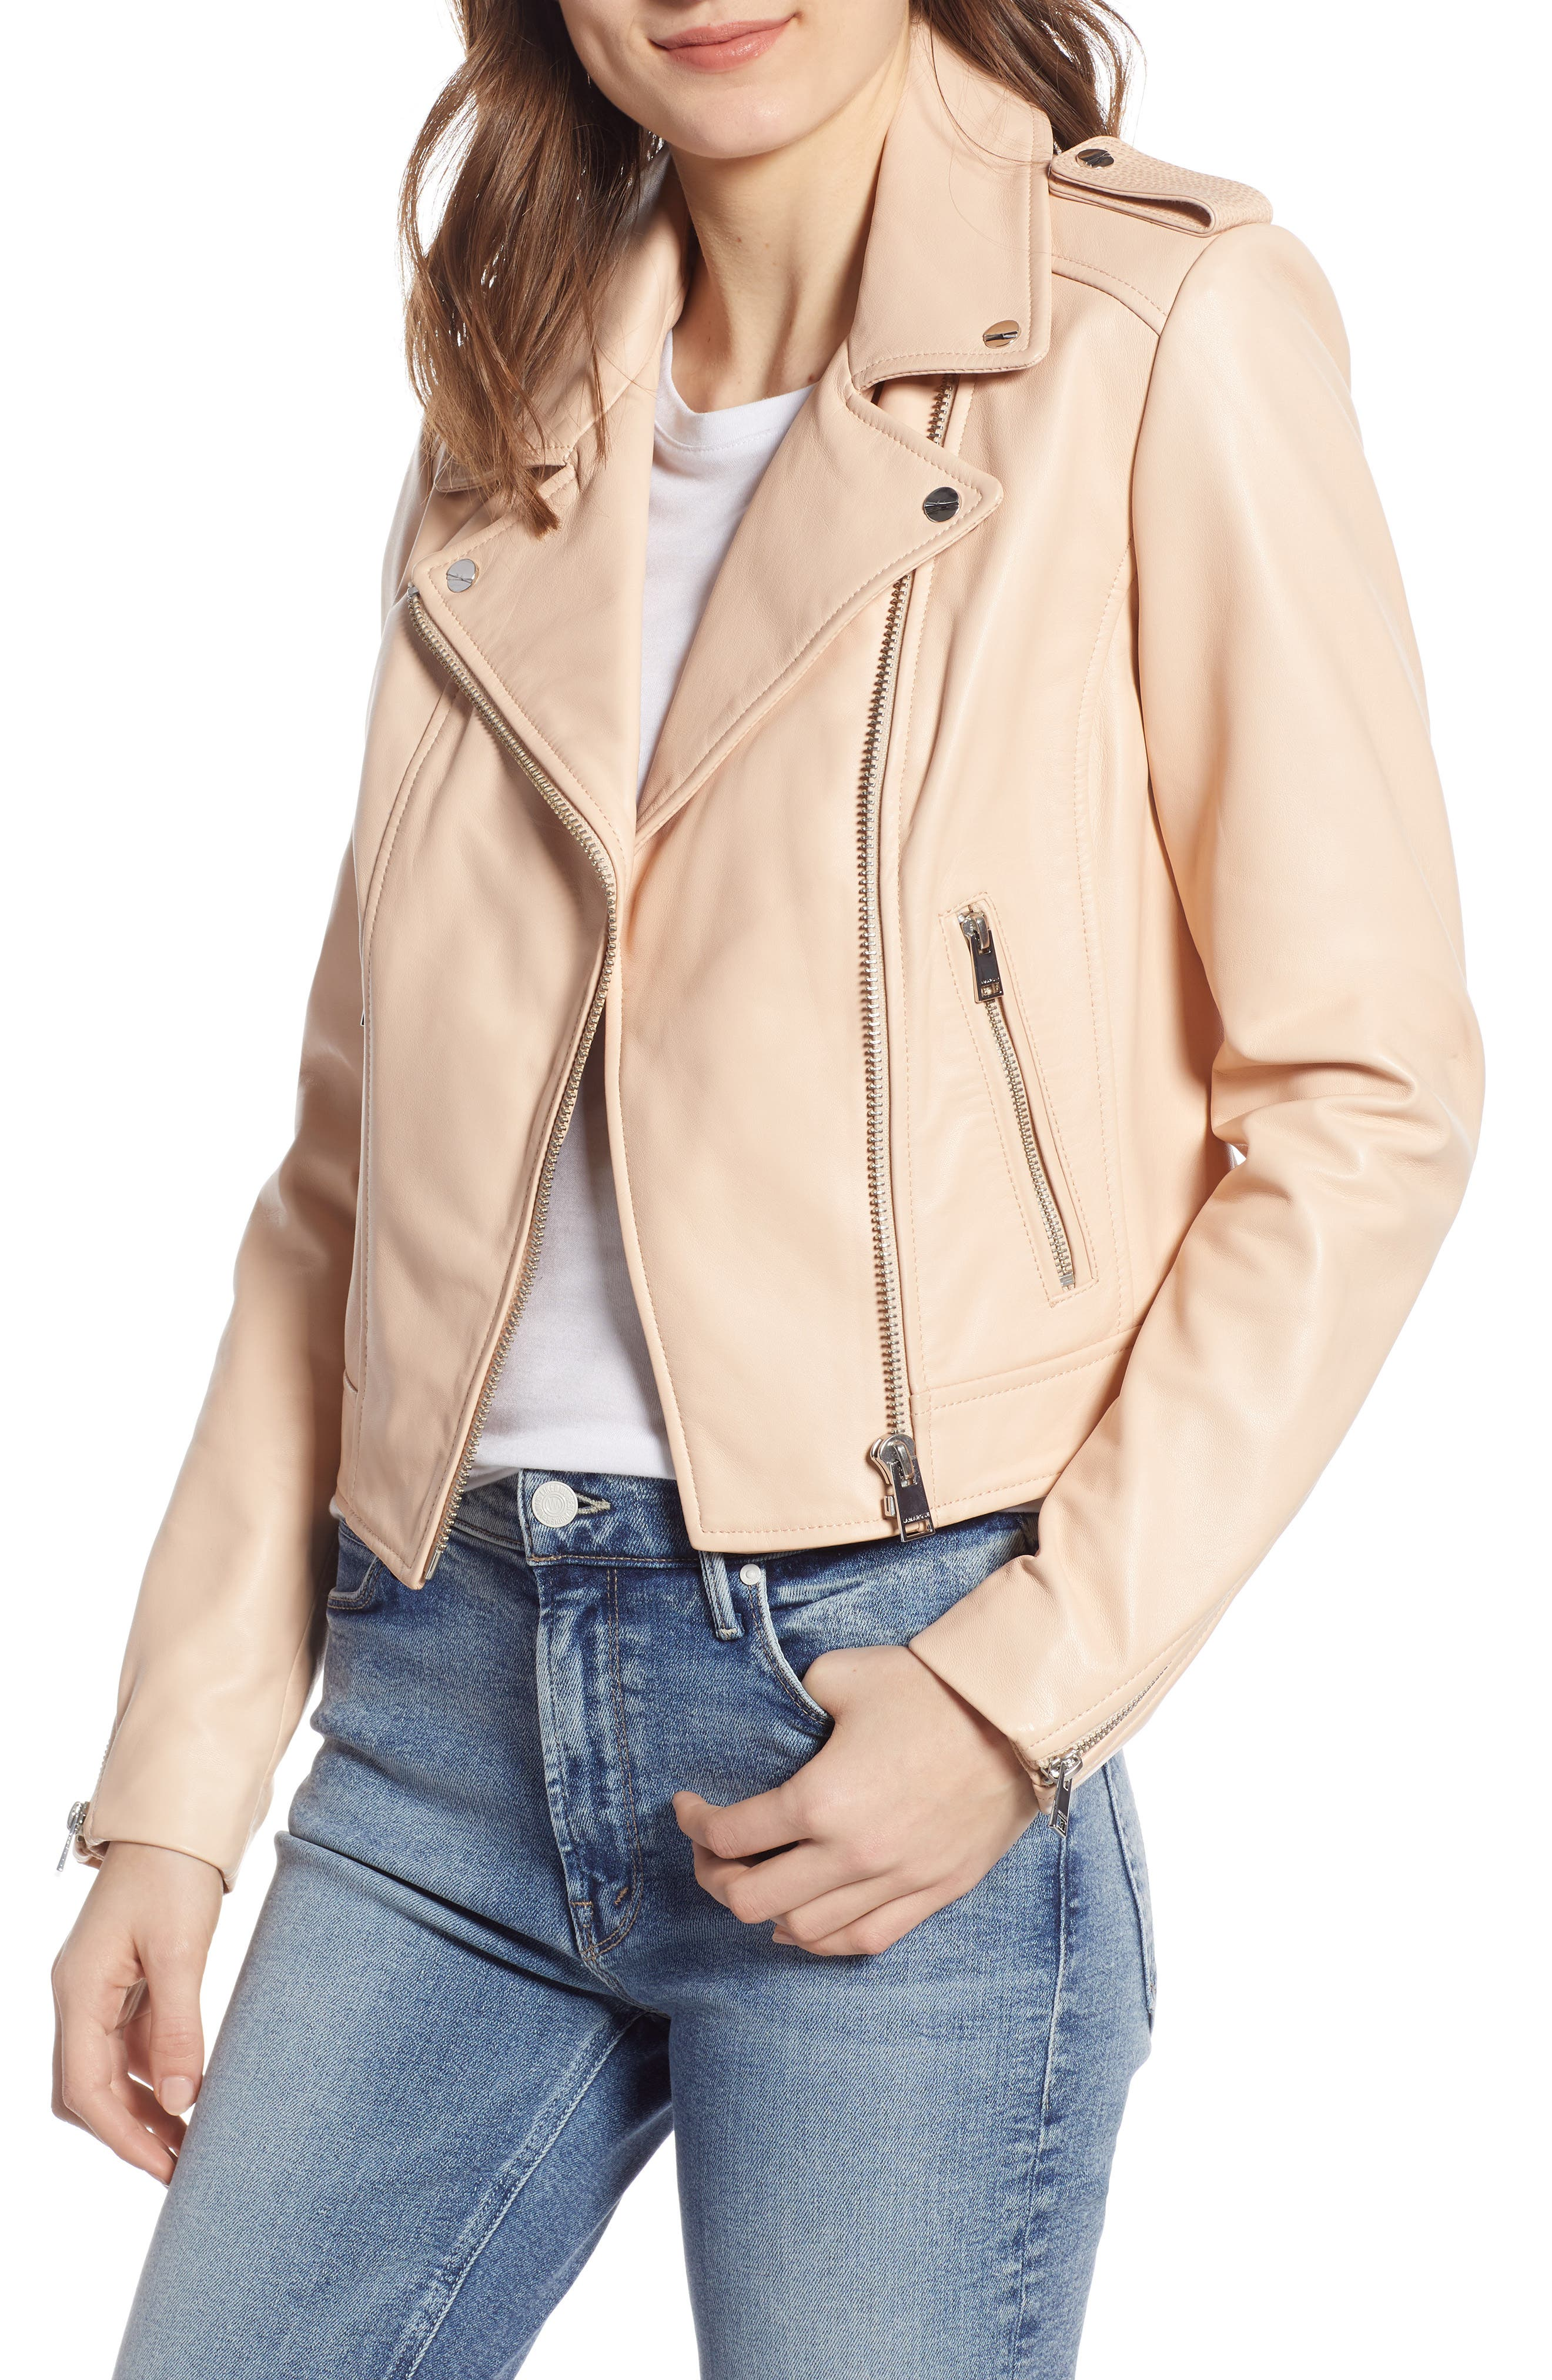 3e45990d8 Buy leather & suede coats for women - Best women's leather & suede ...